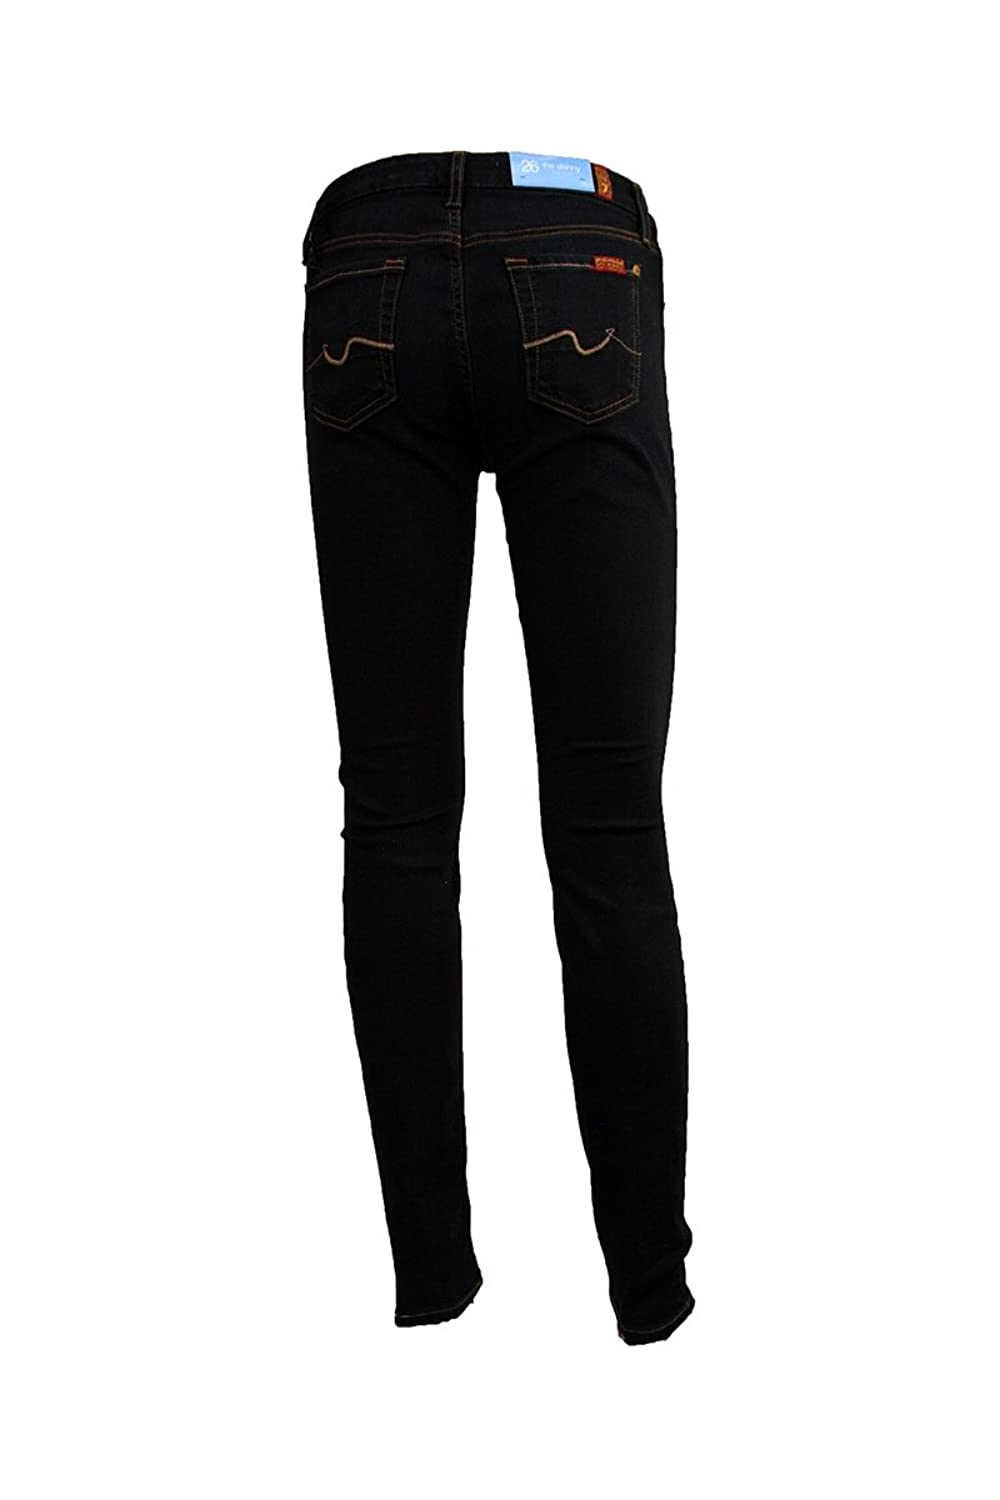 7 For All Mankind The Skinny/Squiggle